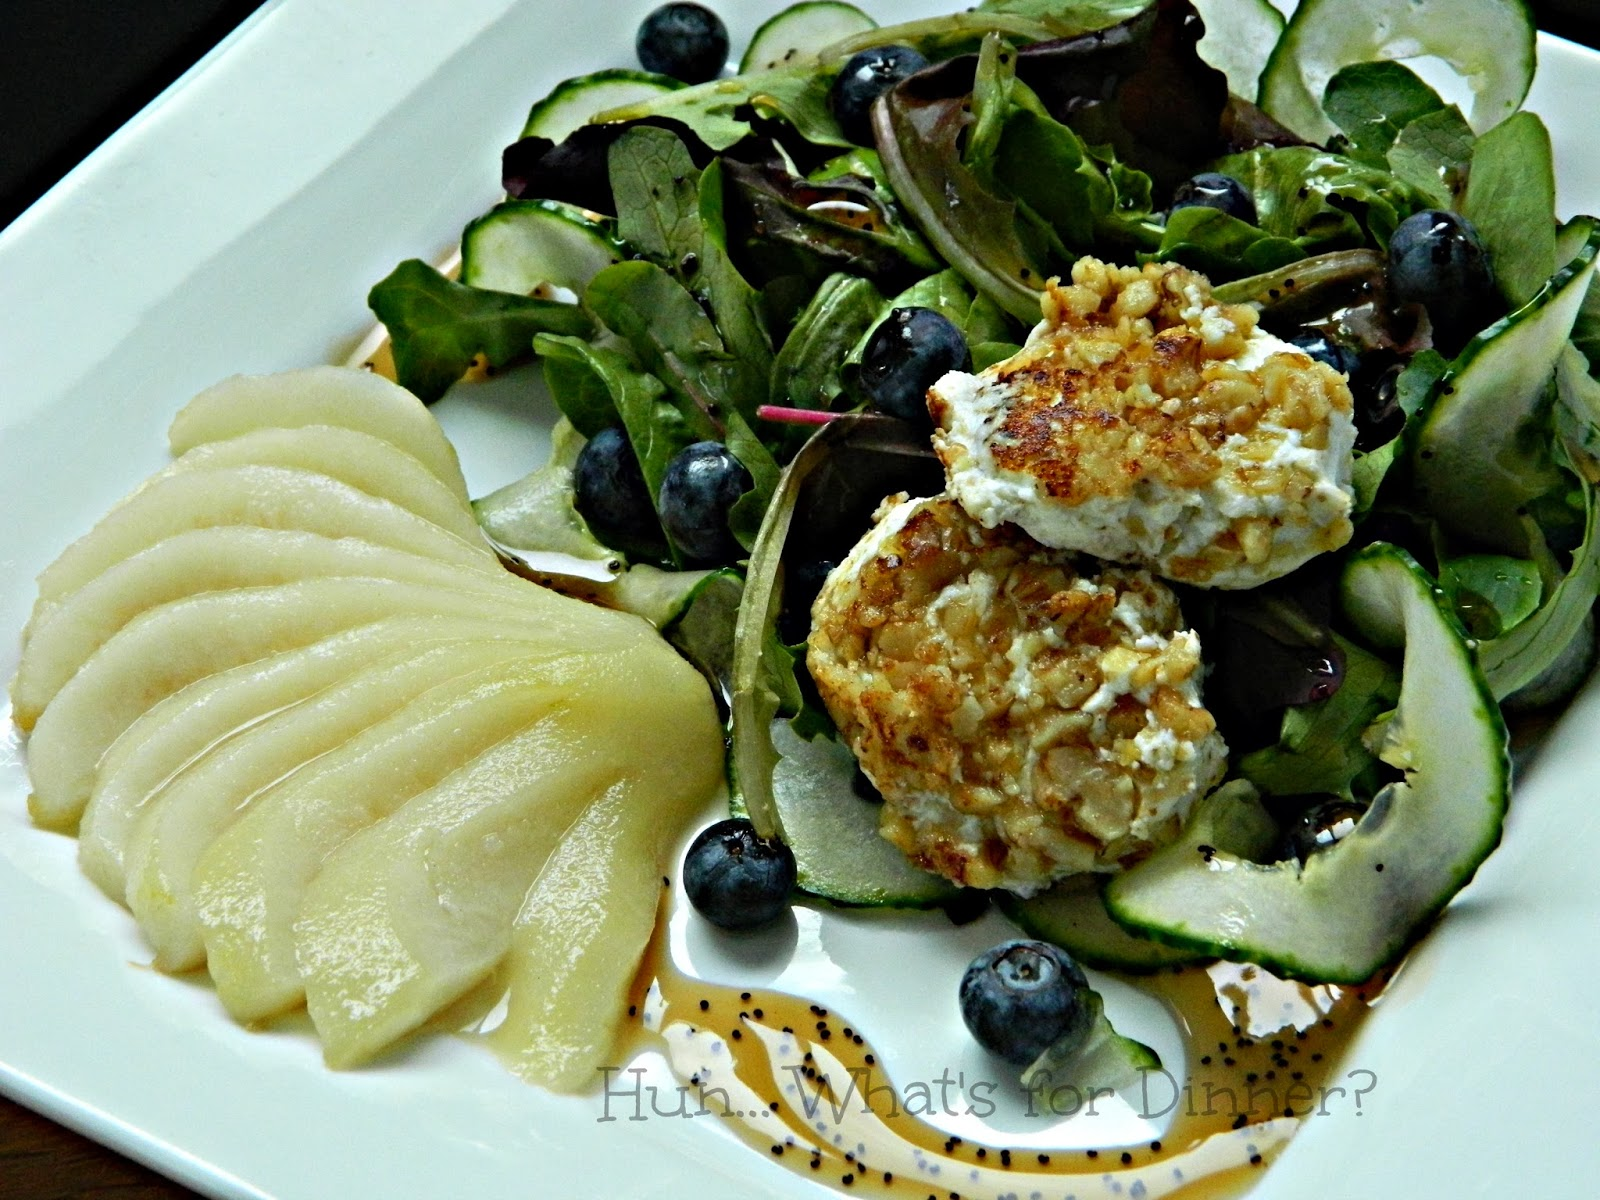 Hun... What's for Dinner?: Mixed greens paired with a maple poached pear, blueberries, walnut crusted goat cheese and drizzled with a maple poppy seed dressing.